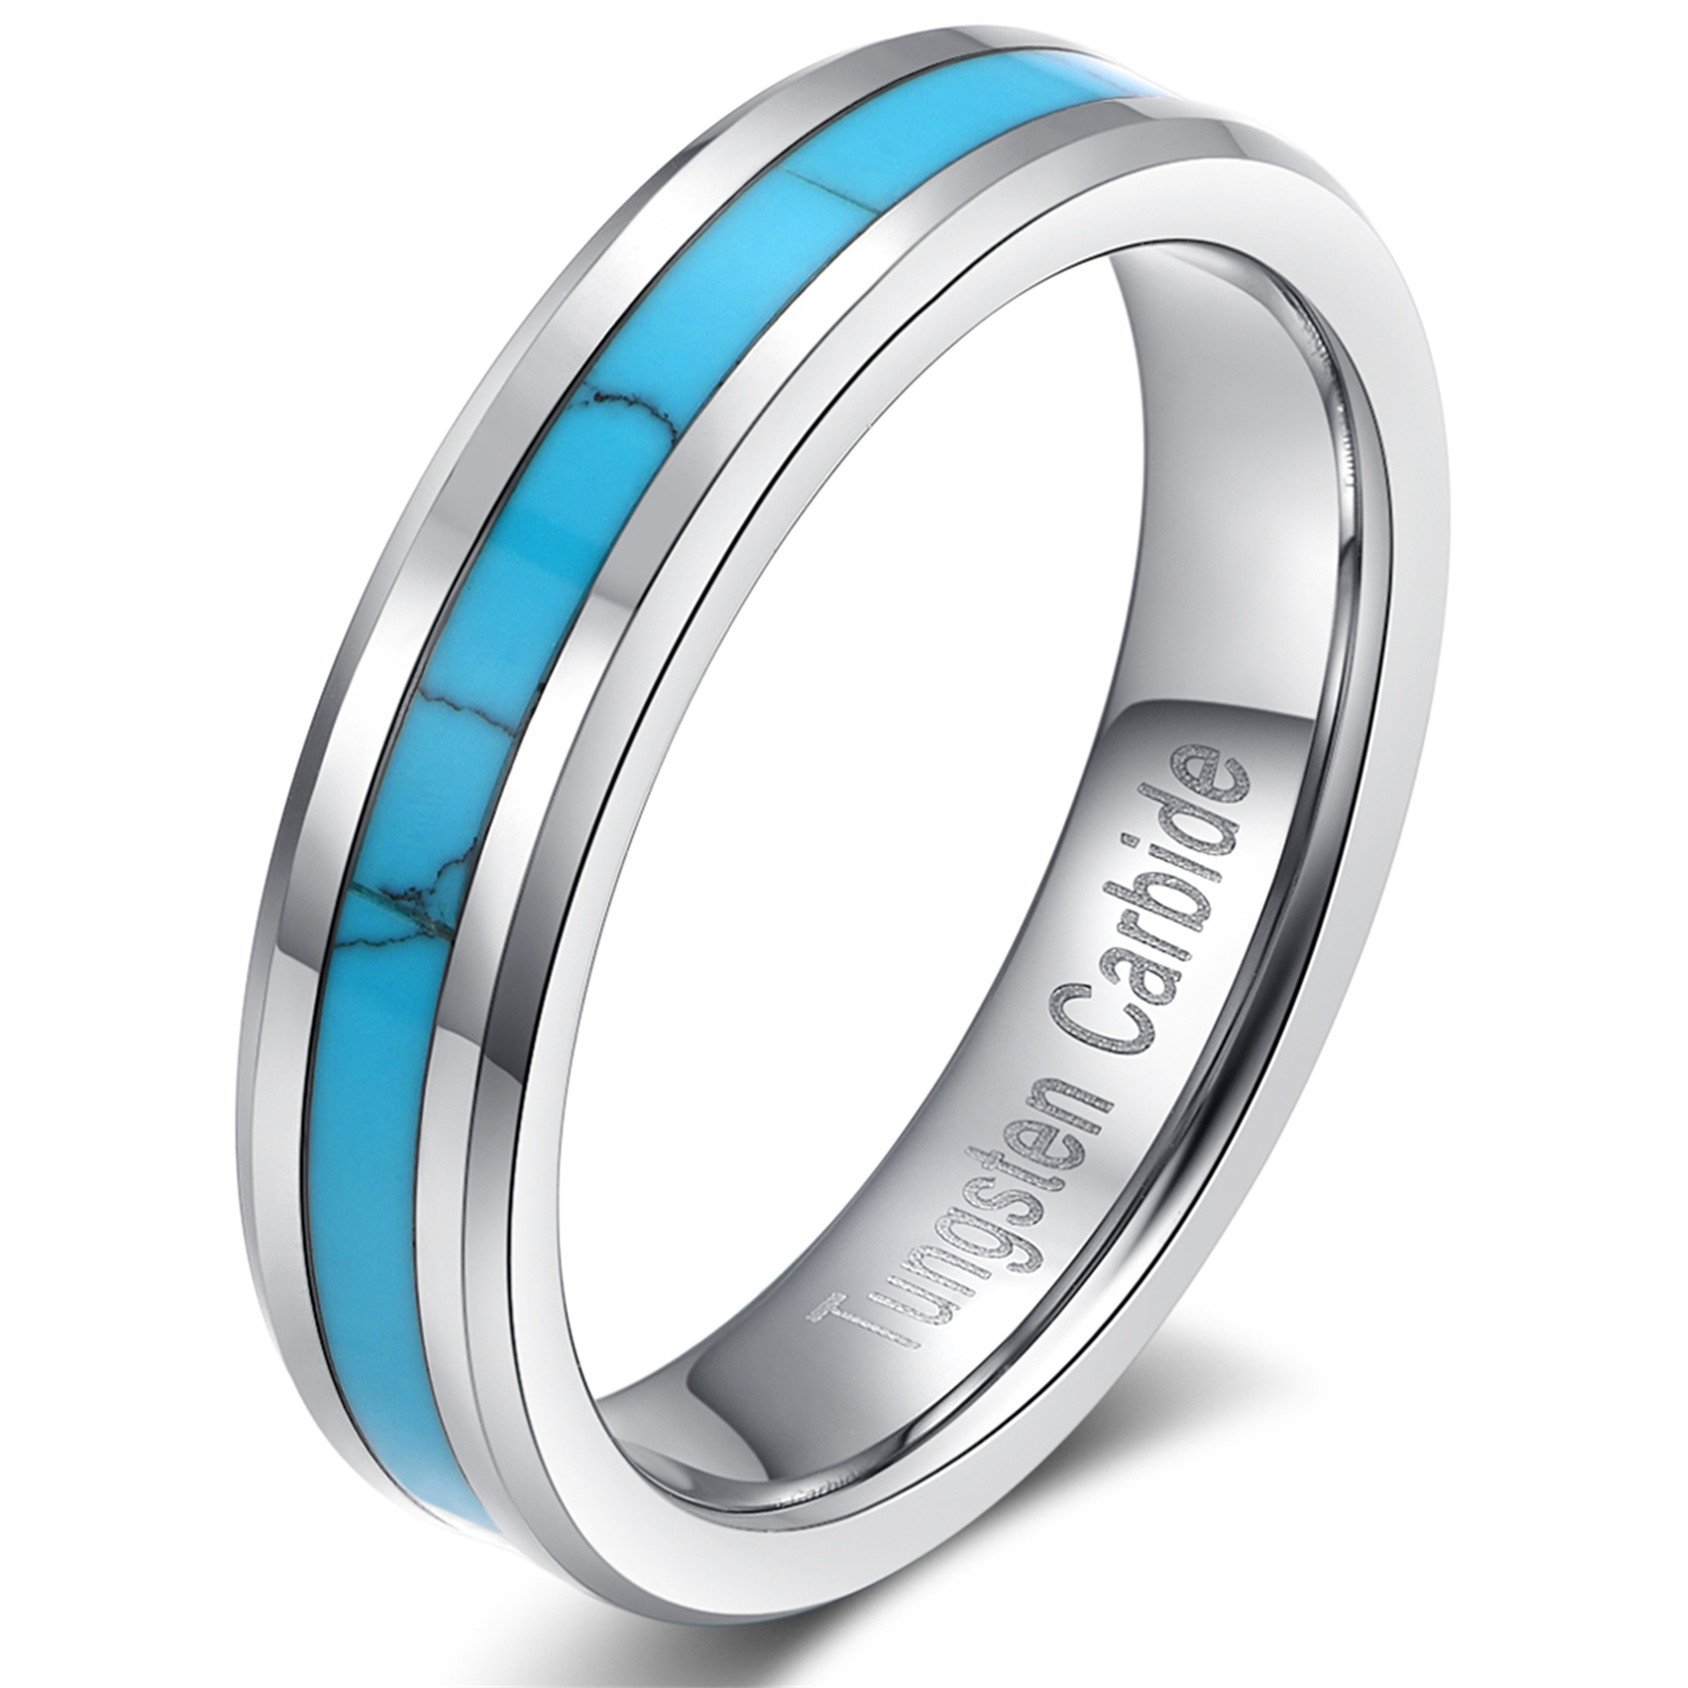 Silver Tungsten Carbide Vintage Turquoise Wedding Engagement Jewelry Band Ring for Women 6mm Comfort Fit Size 5